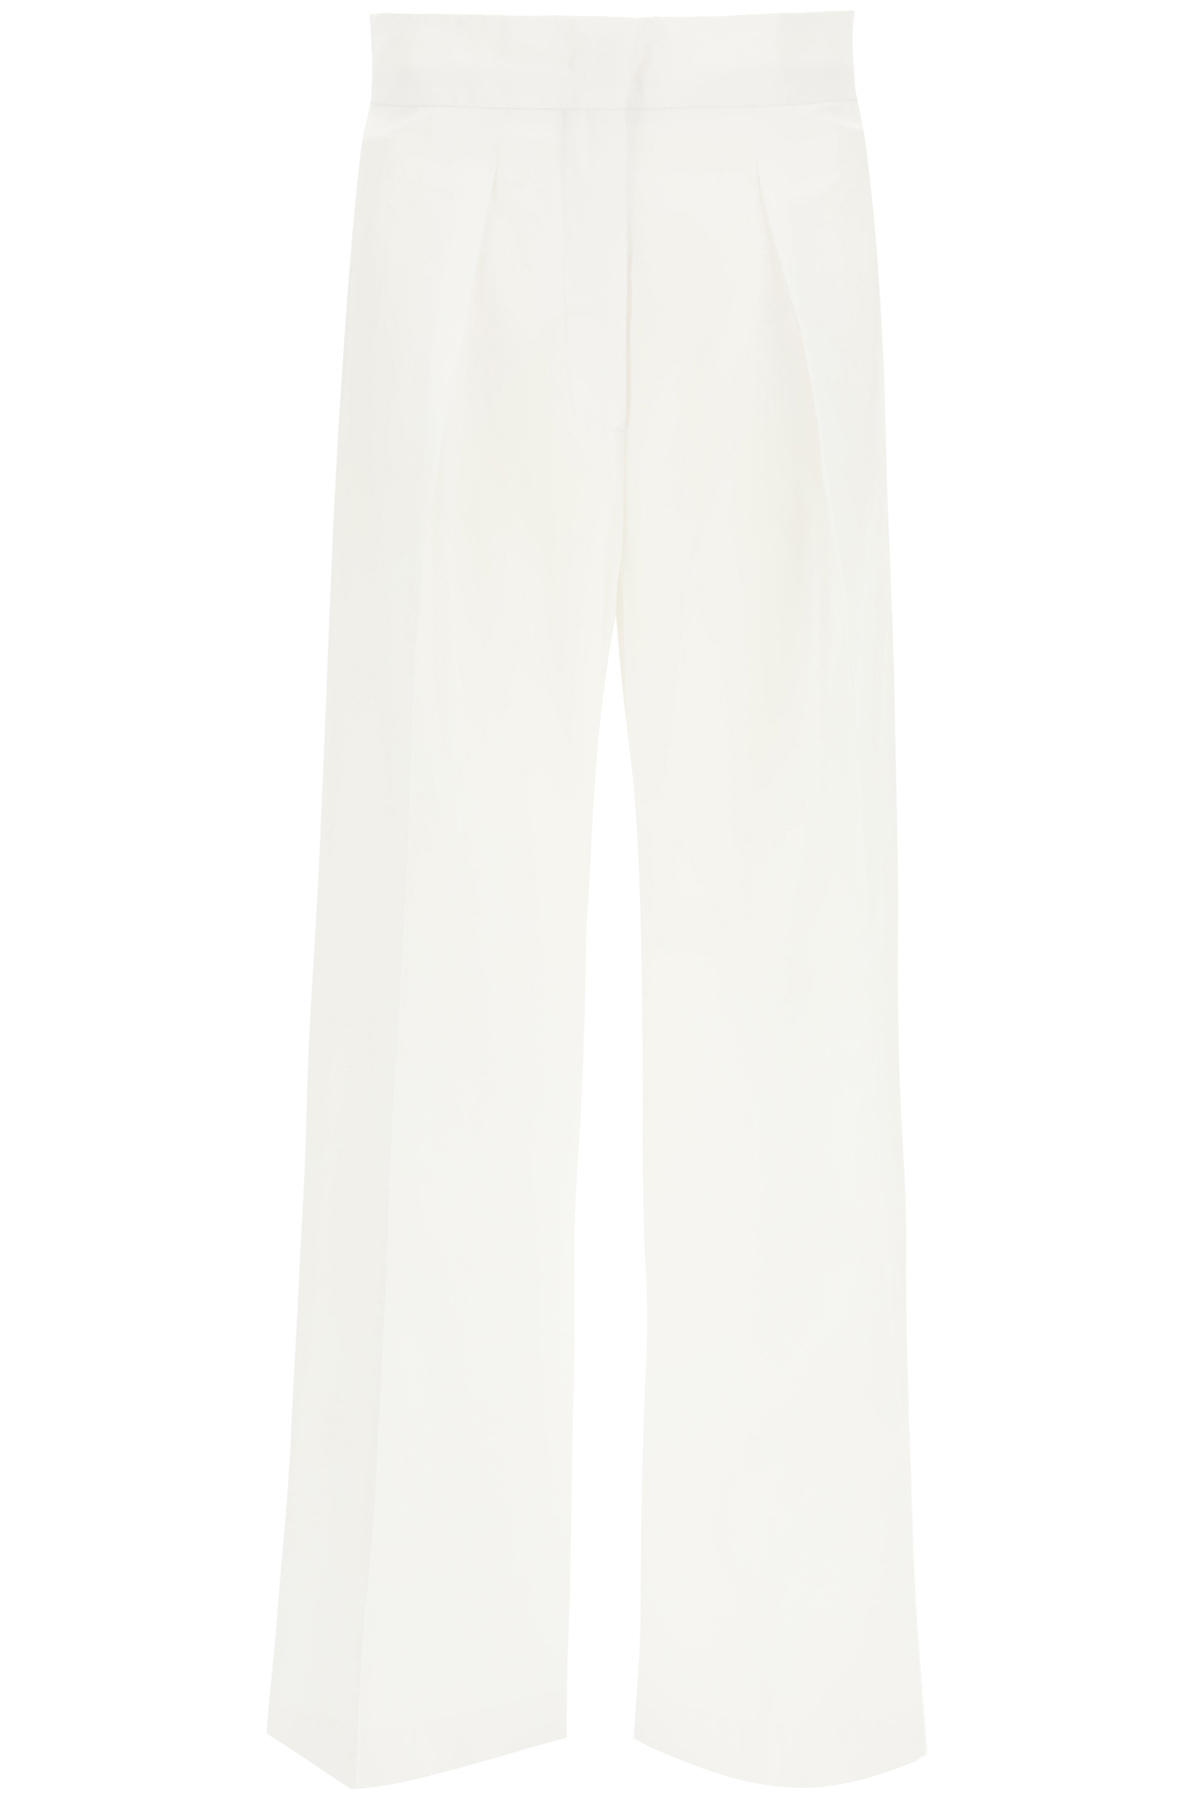 SPORTMAX VISONE COTTON TROUSERS 42 White Cotton